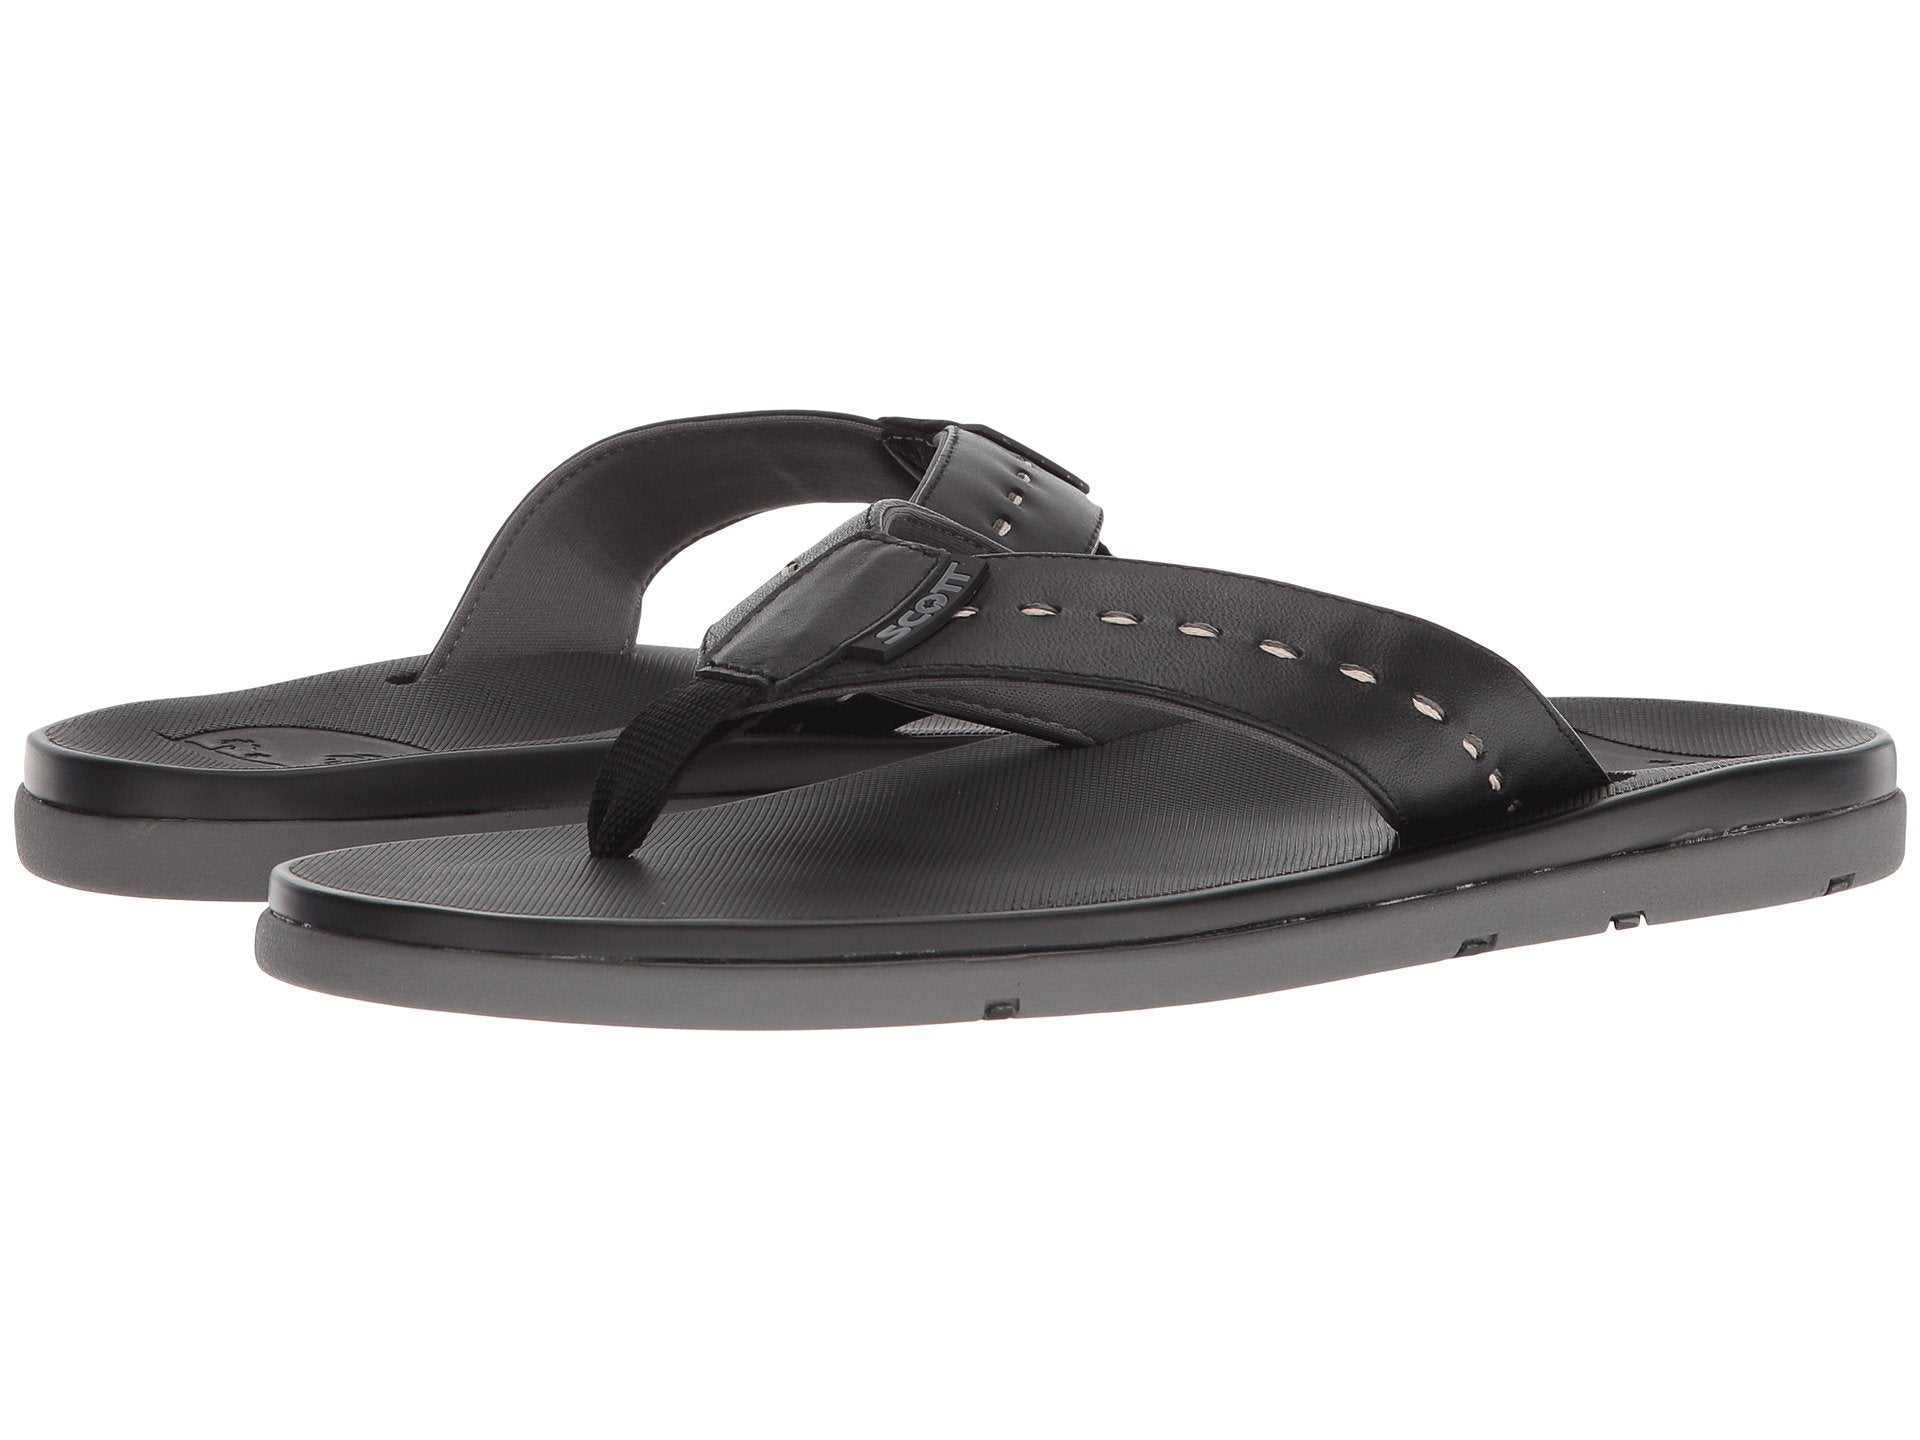 Scott's Sophisticated Alika Leather Sandal | Neoprene Strap | Hand Crafted Footwear - AlohaShoes.com